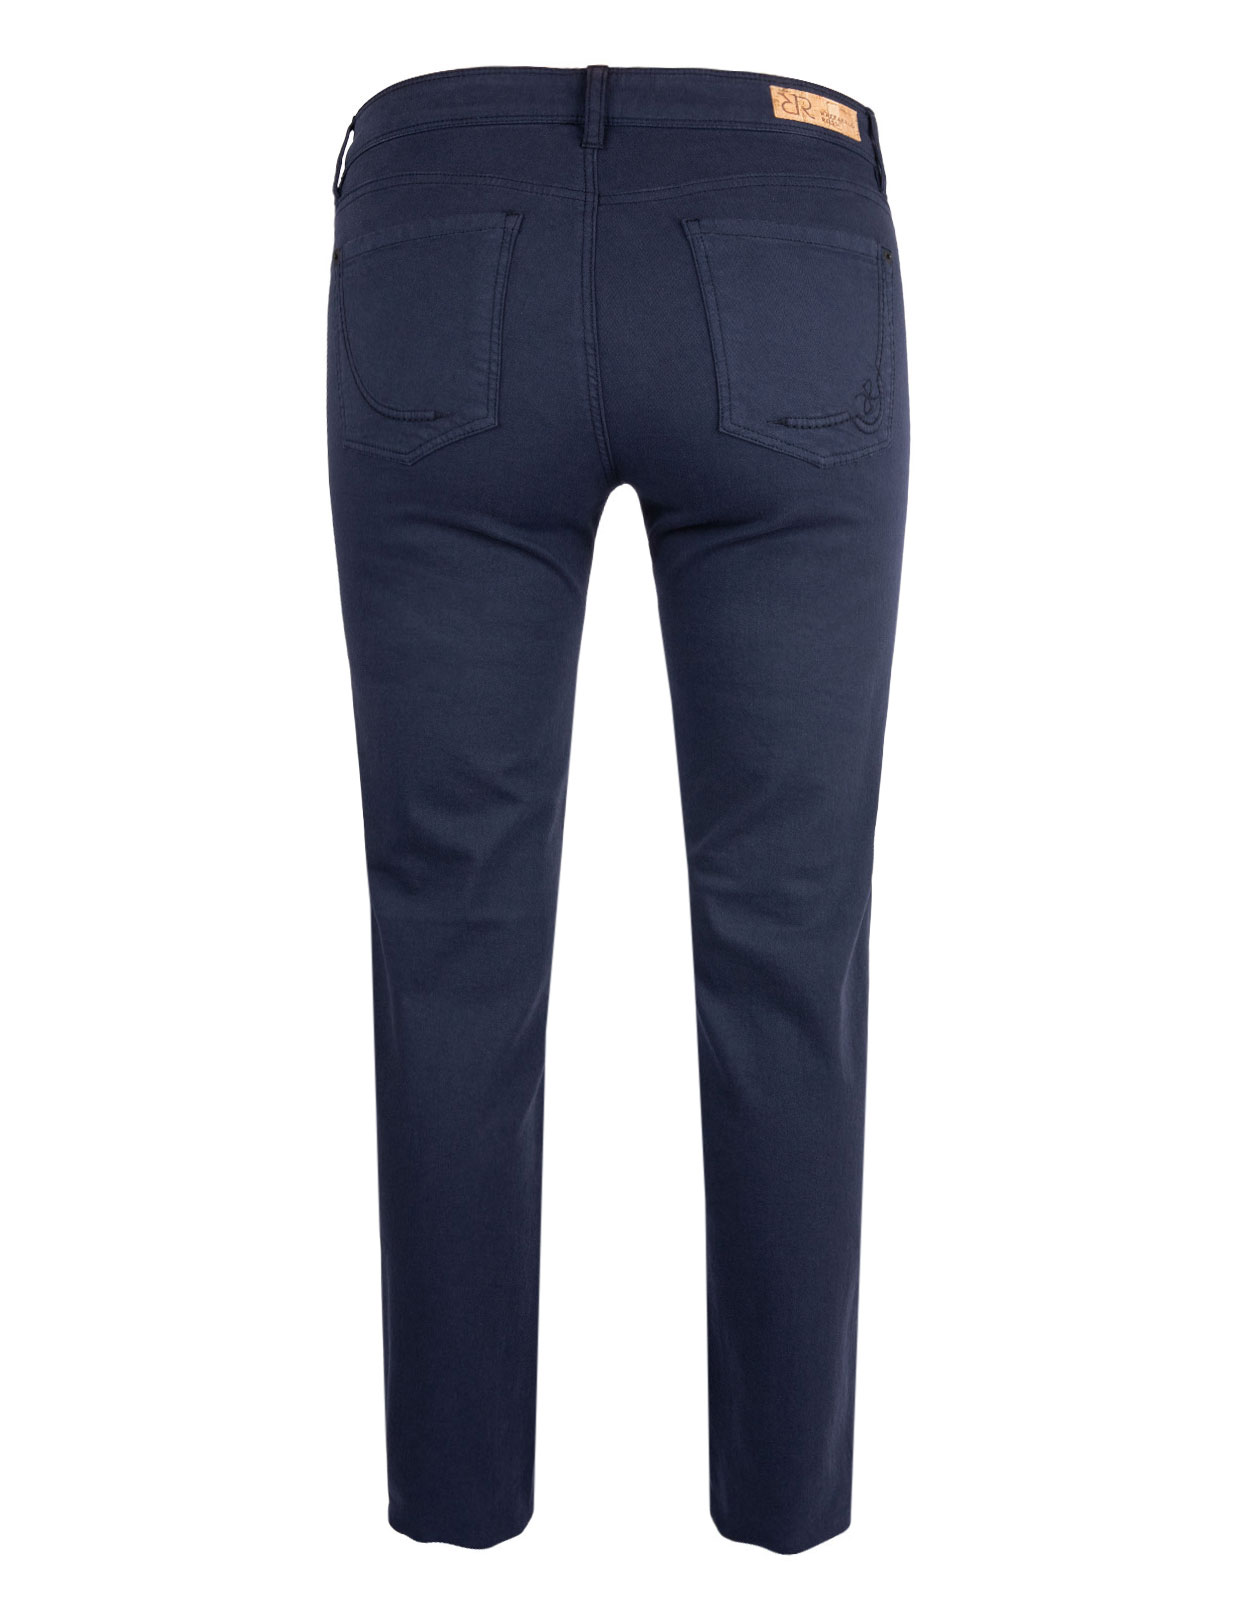 Vic 5-pkt trousers Navy